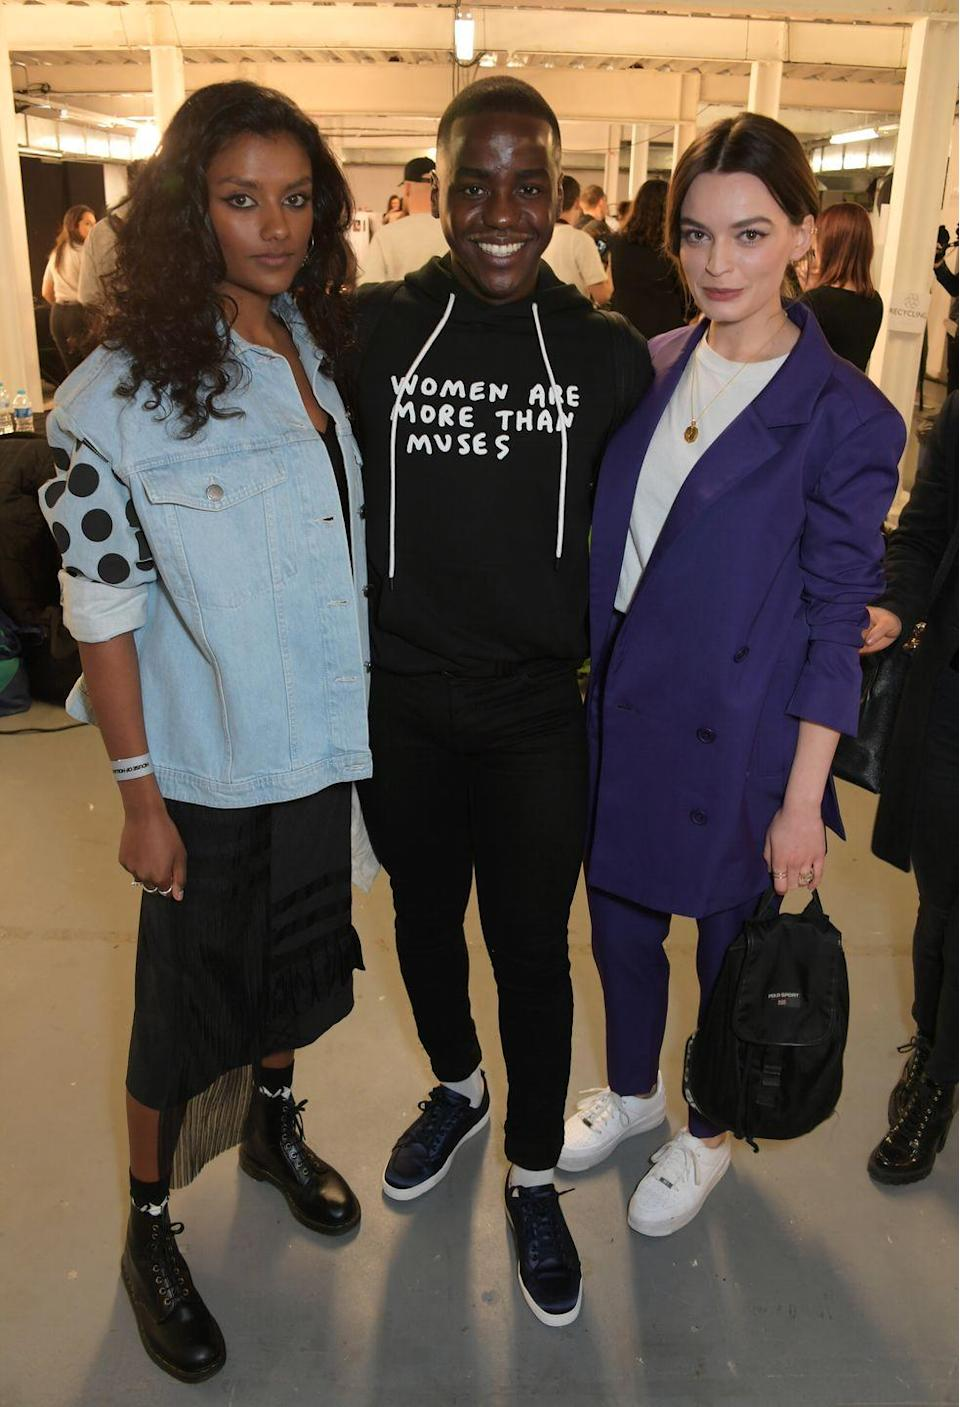 <p>This look was from London Fashion Week in 2019, but we are still very here for it. Big yes to the polka dot denim and classic boots + midi skirt combo.</p>